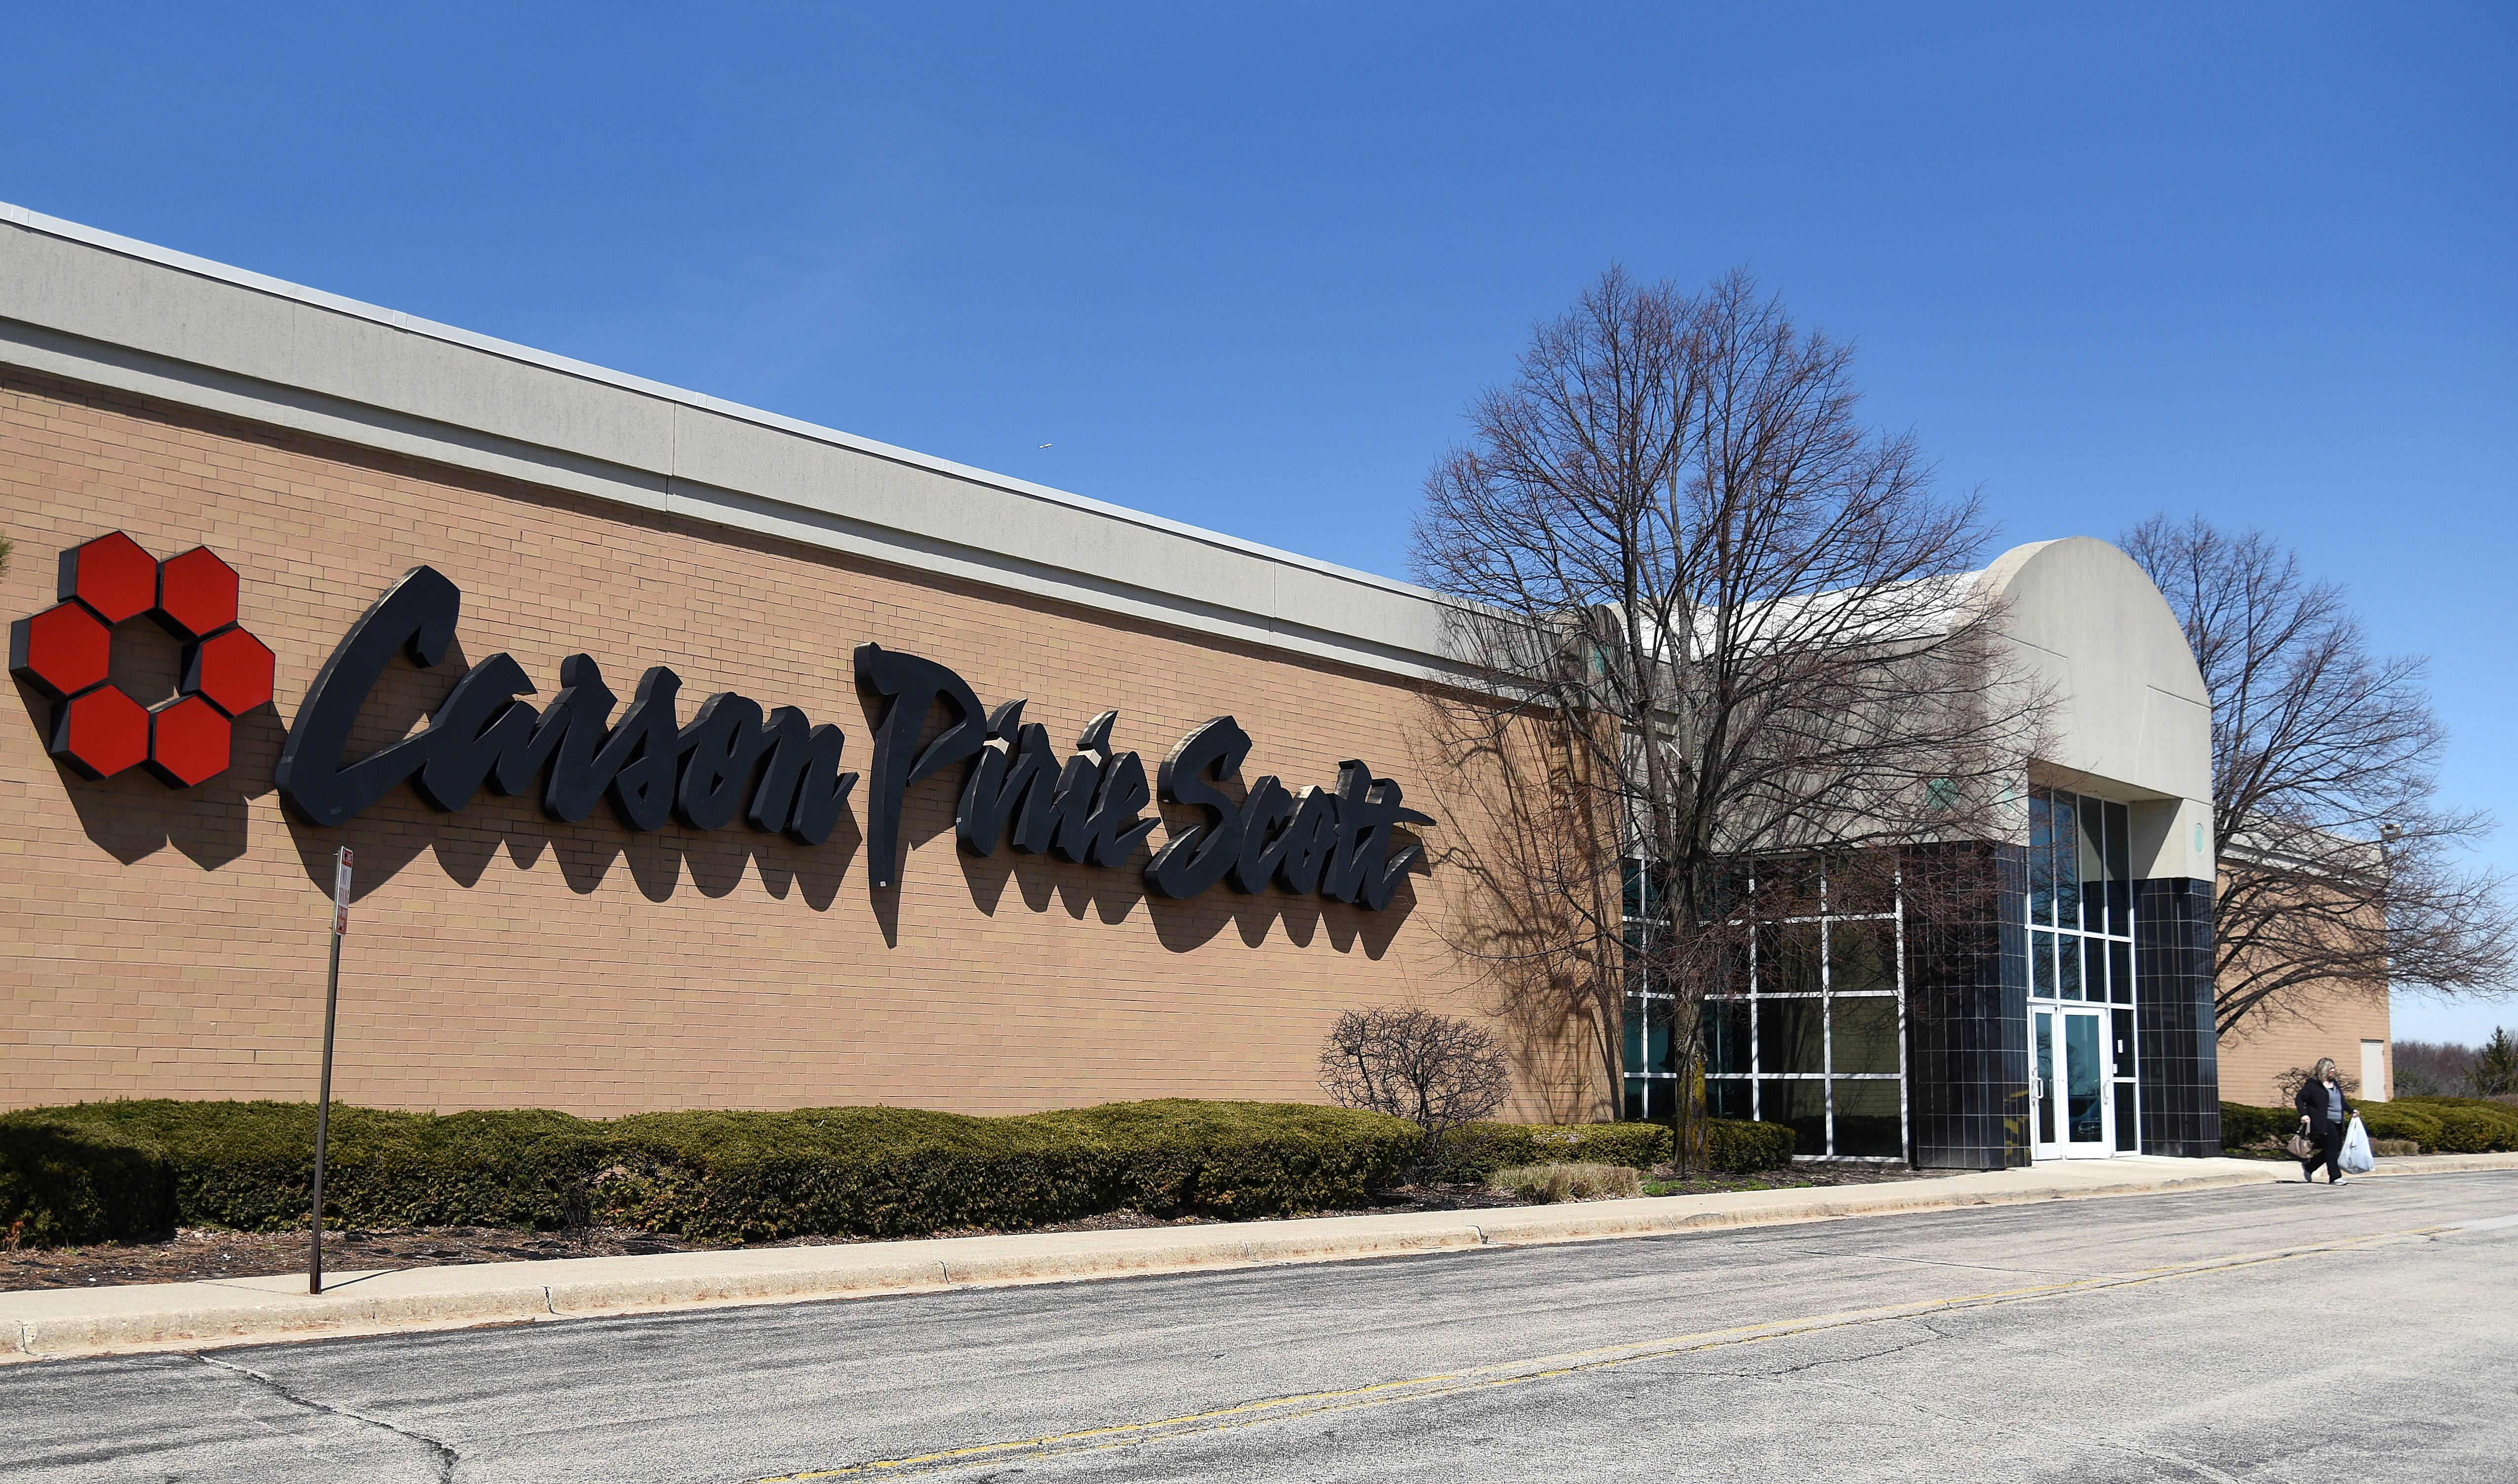 Experts Predict Carsonu0027s Demise Will Hurt Other Mall Retailers In Chicago  Area